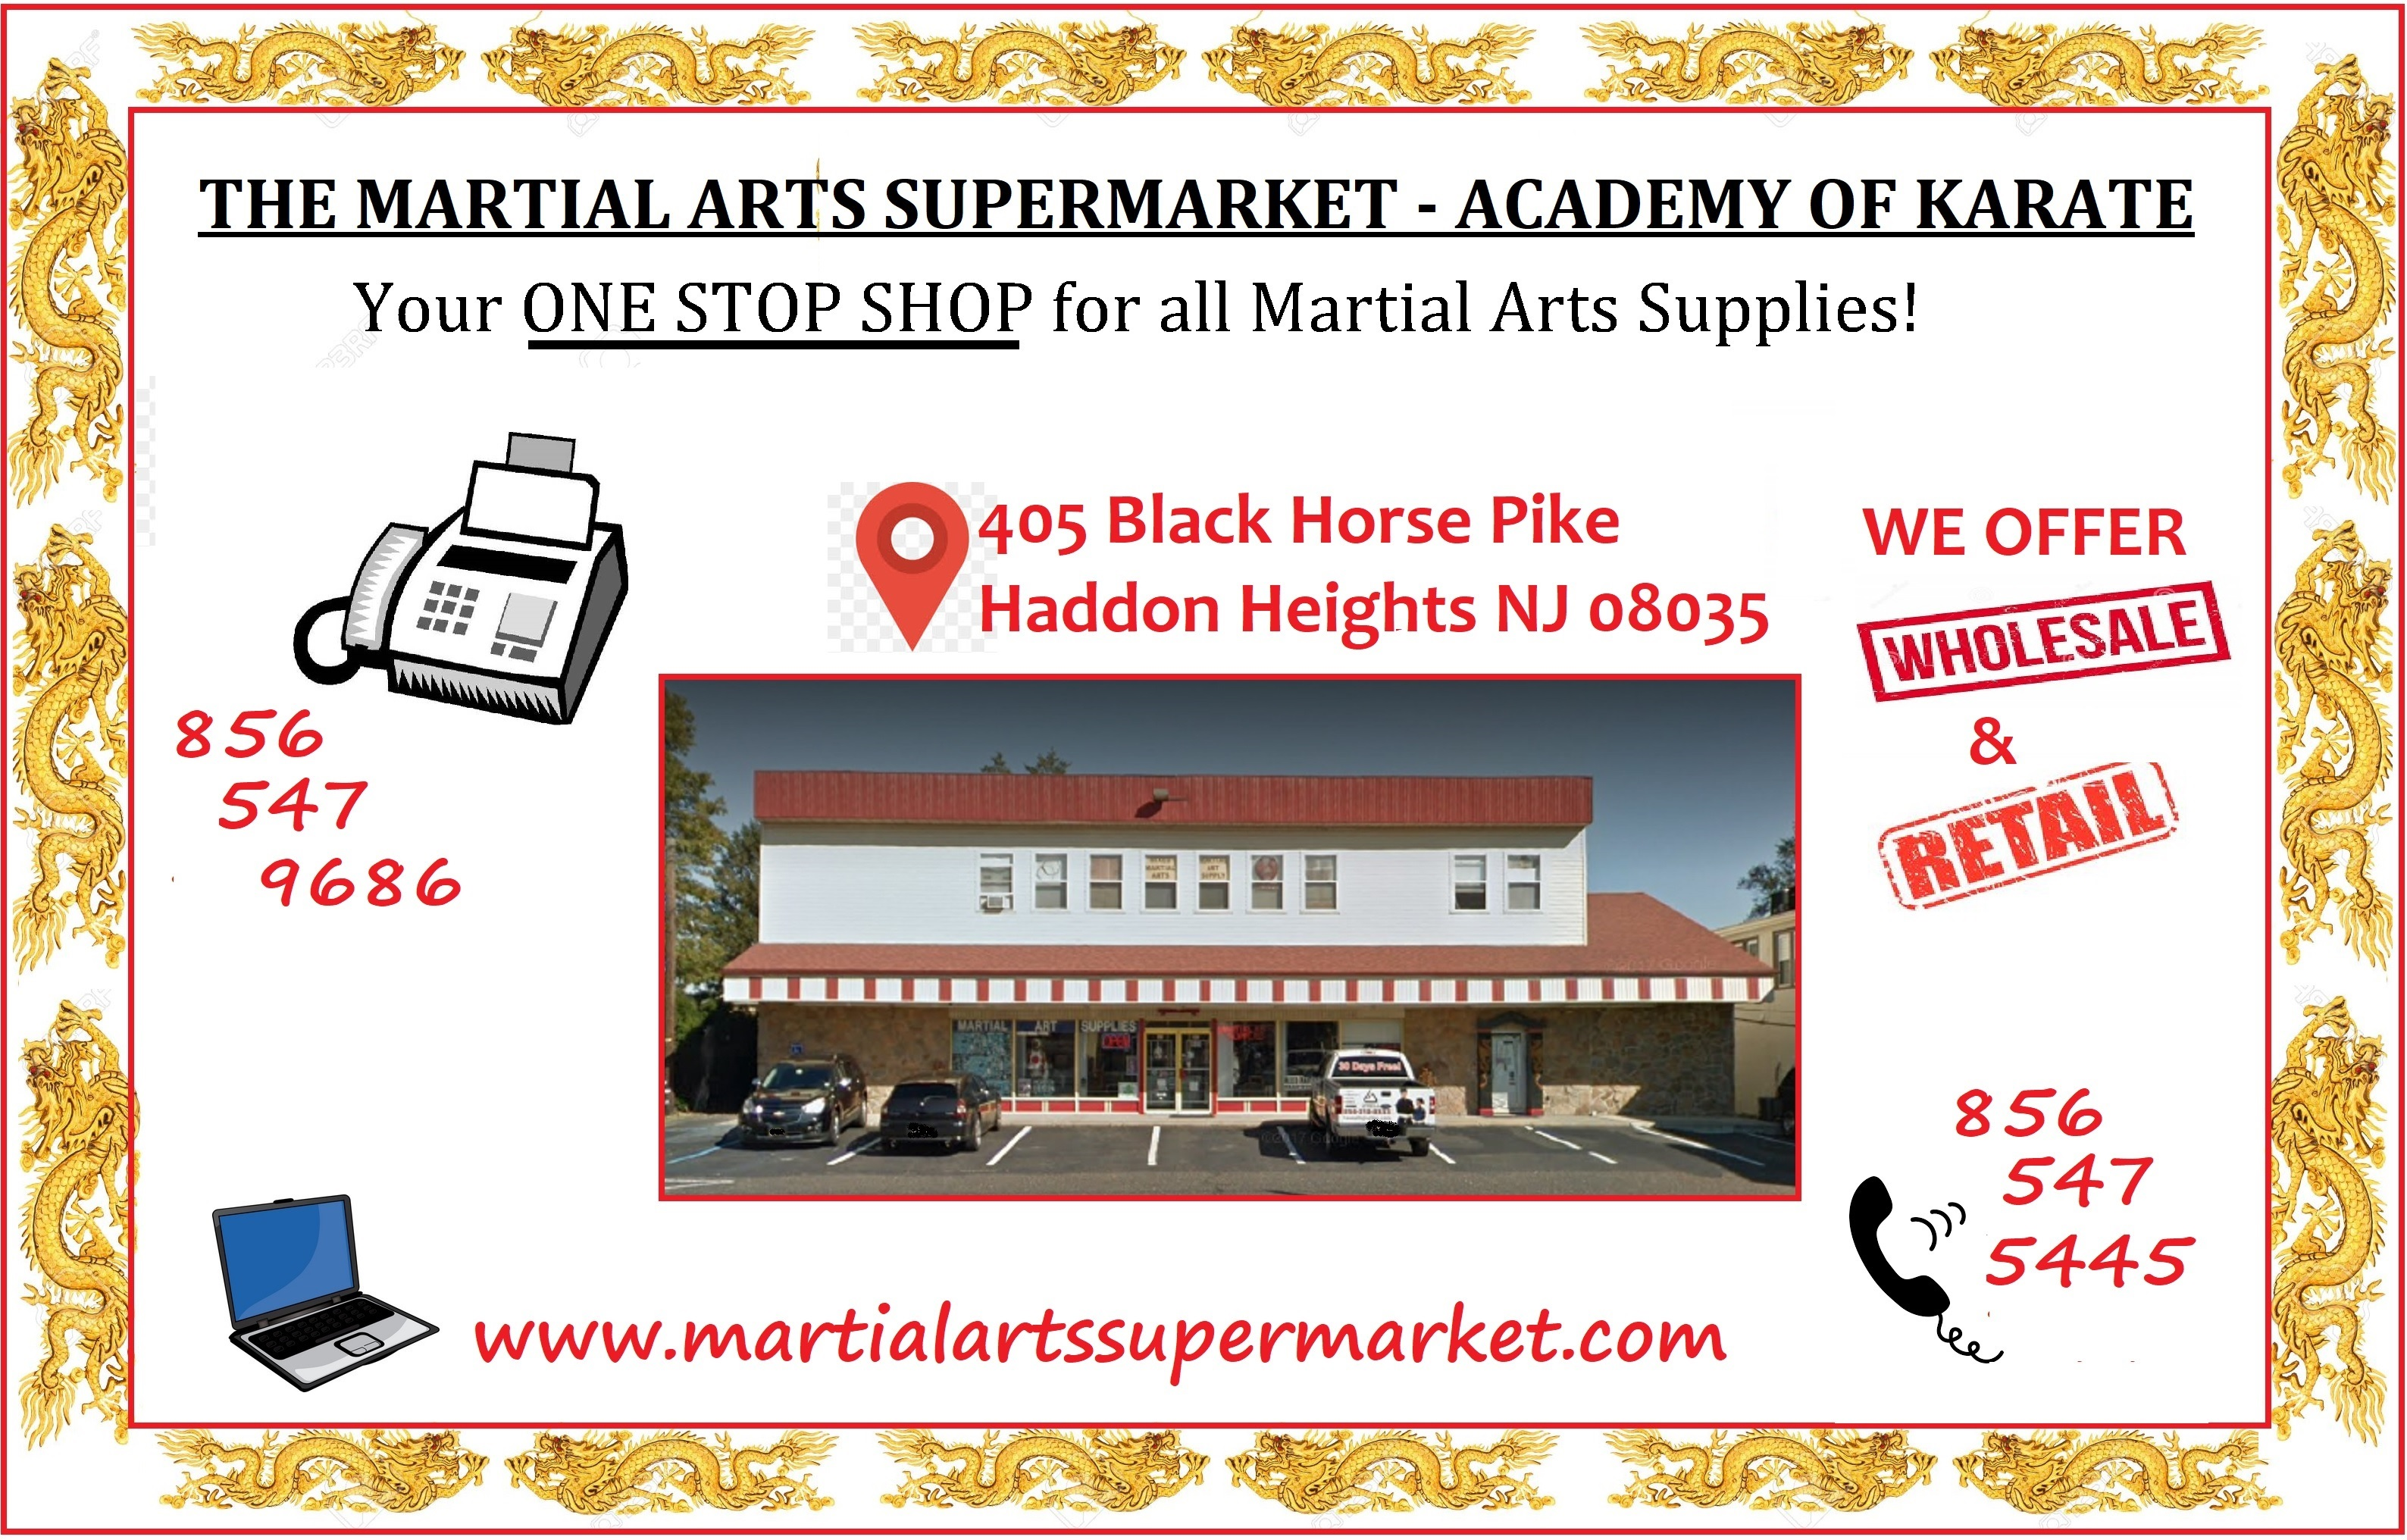 Visit our retail store